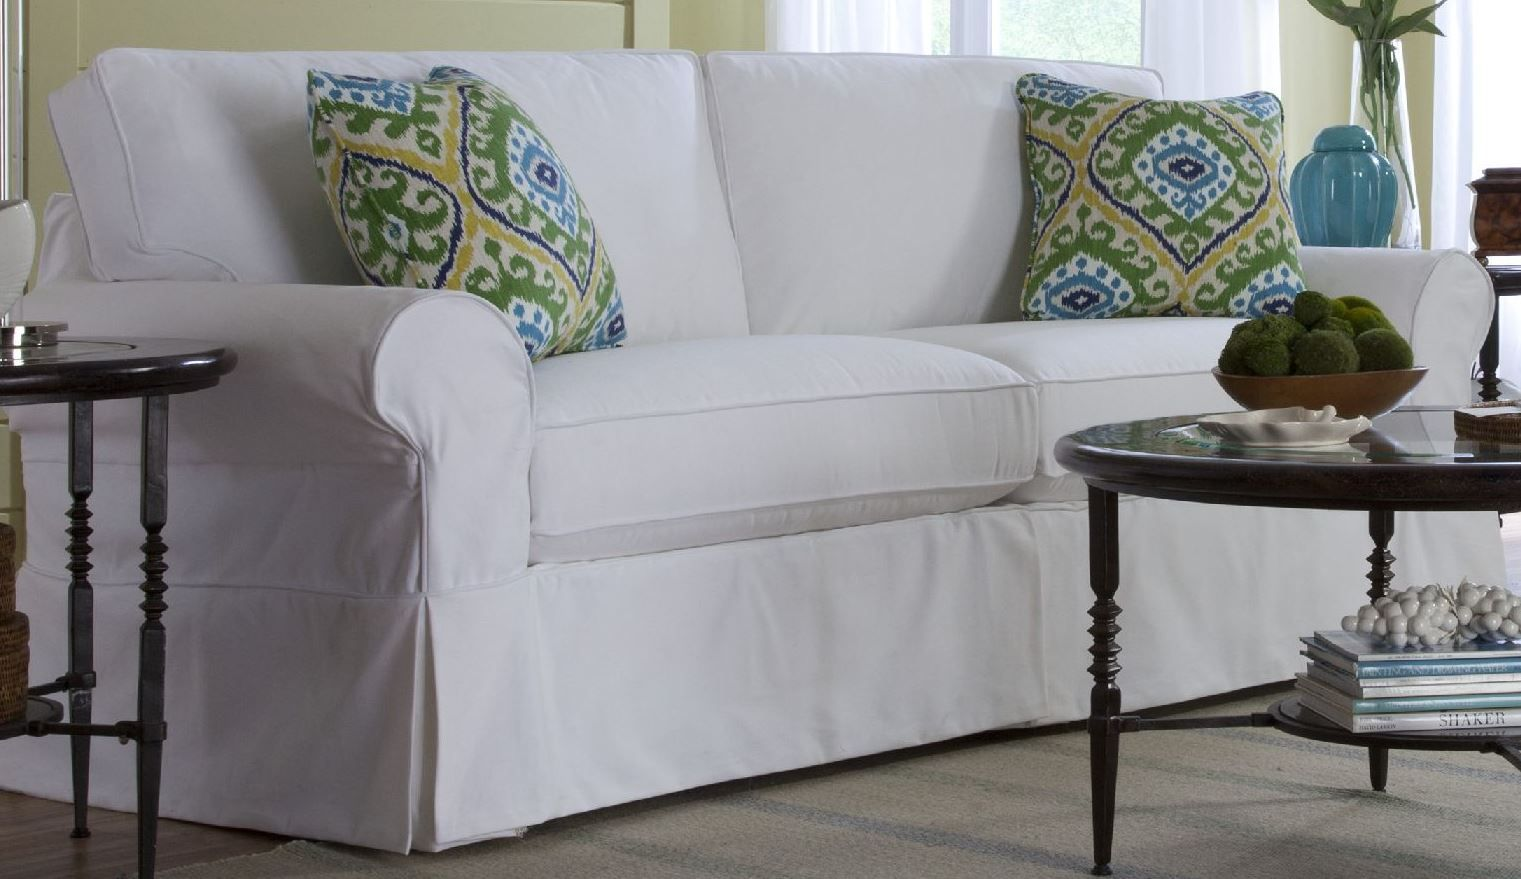 Craftmaster Slipcovered Sofa Sales #Charleston #SlipcoveredSofa  #SouthernStyle